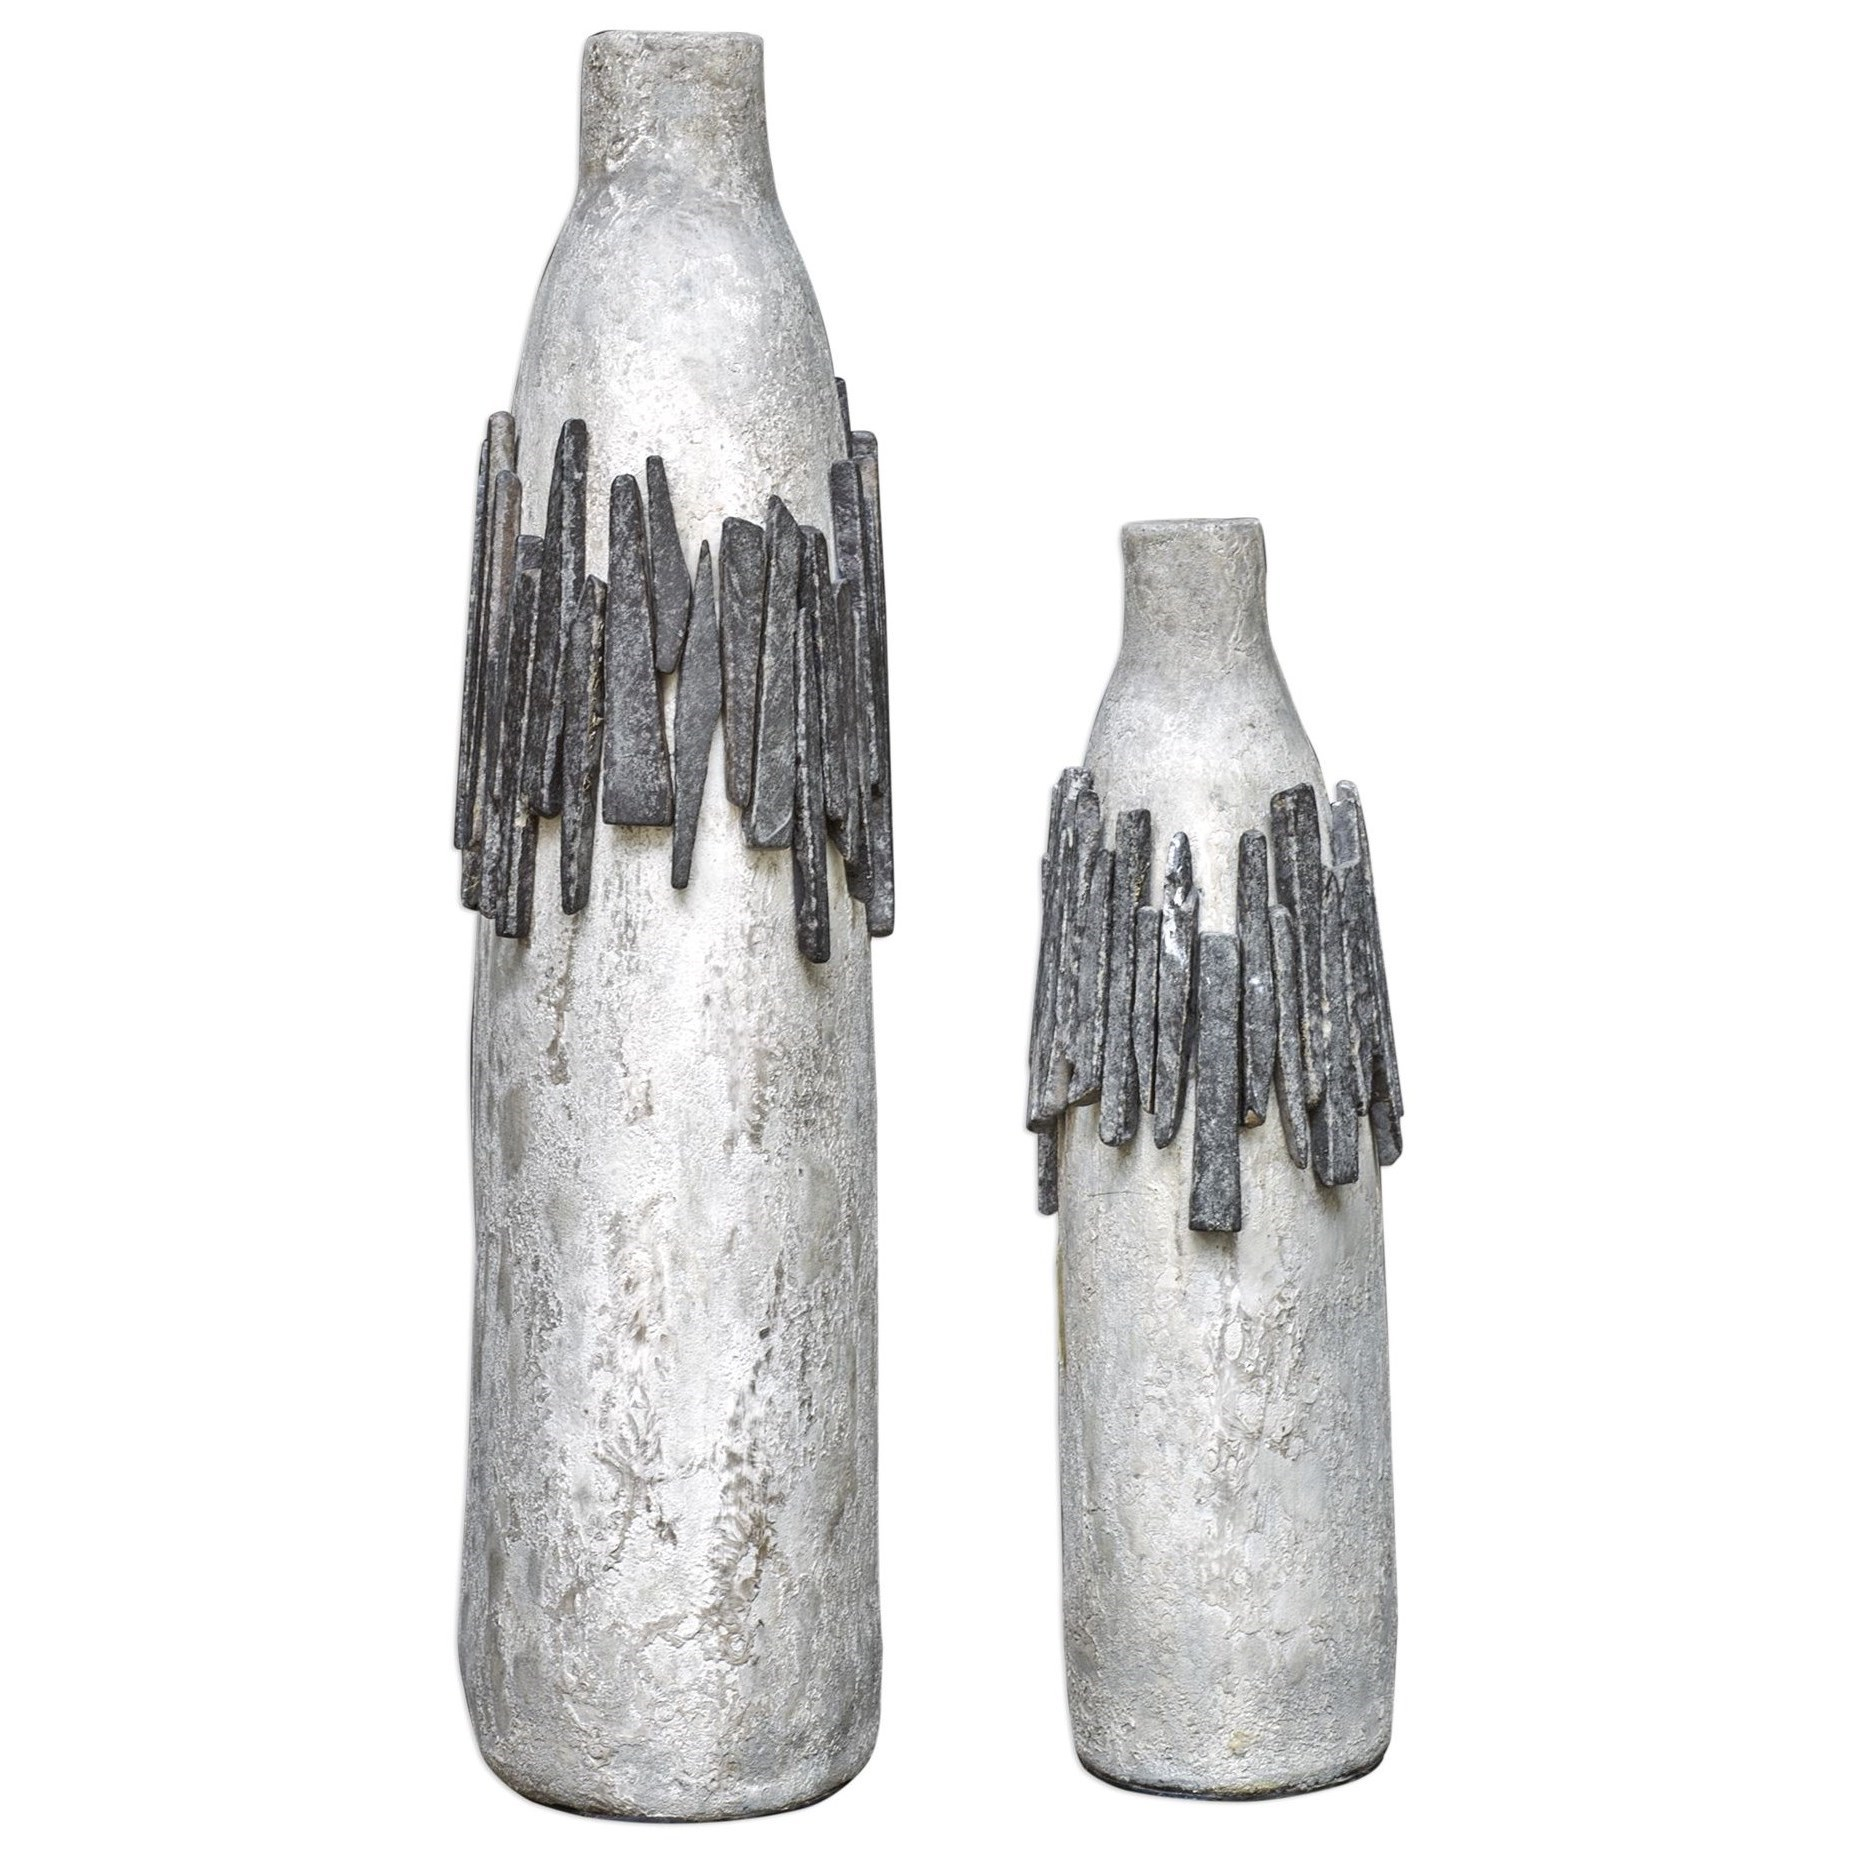 Accessories - Vases and Urns Rutva Aged Ivory Vases, S/2 by Uttermost at Mueller Furniture